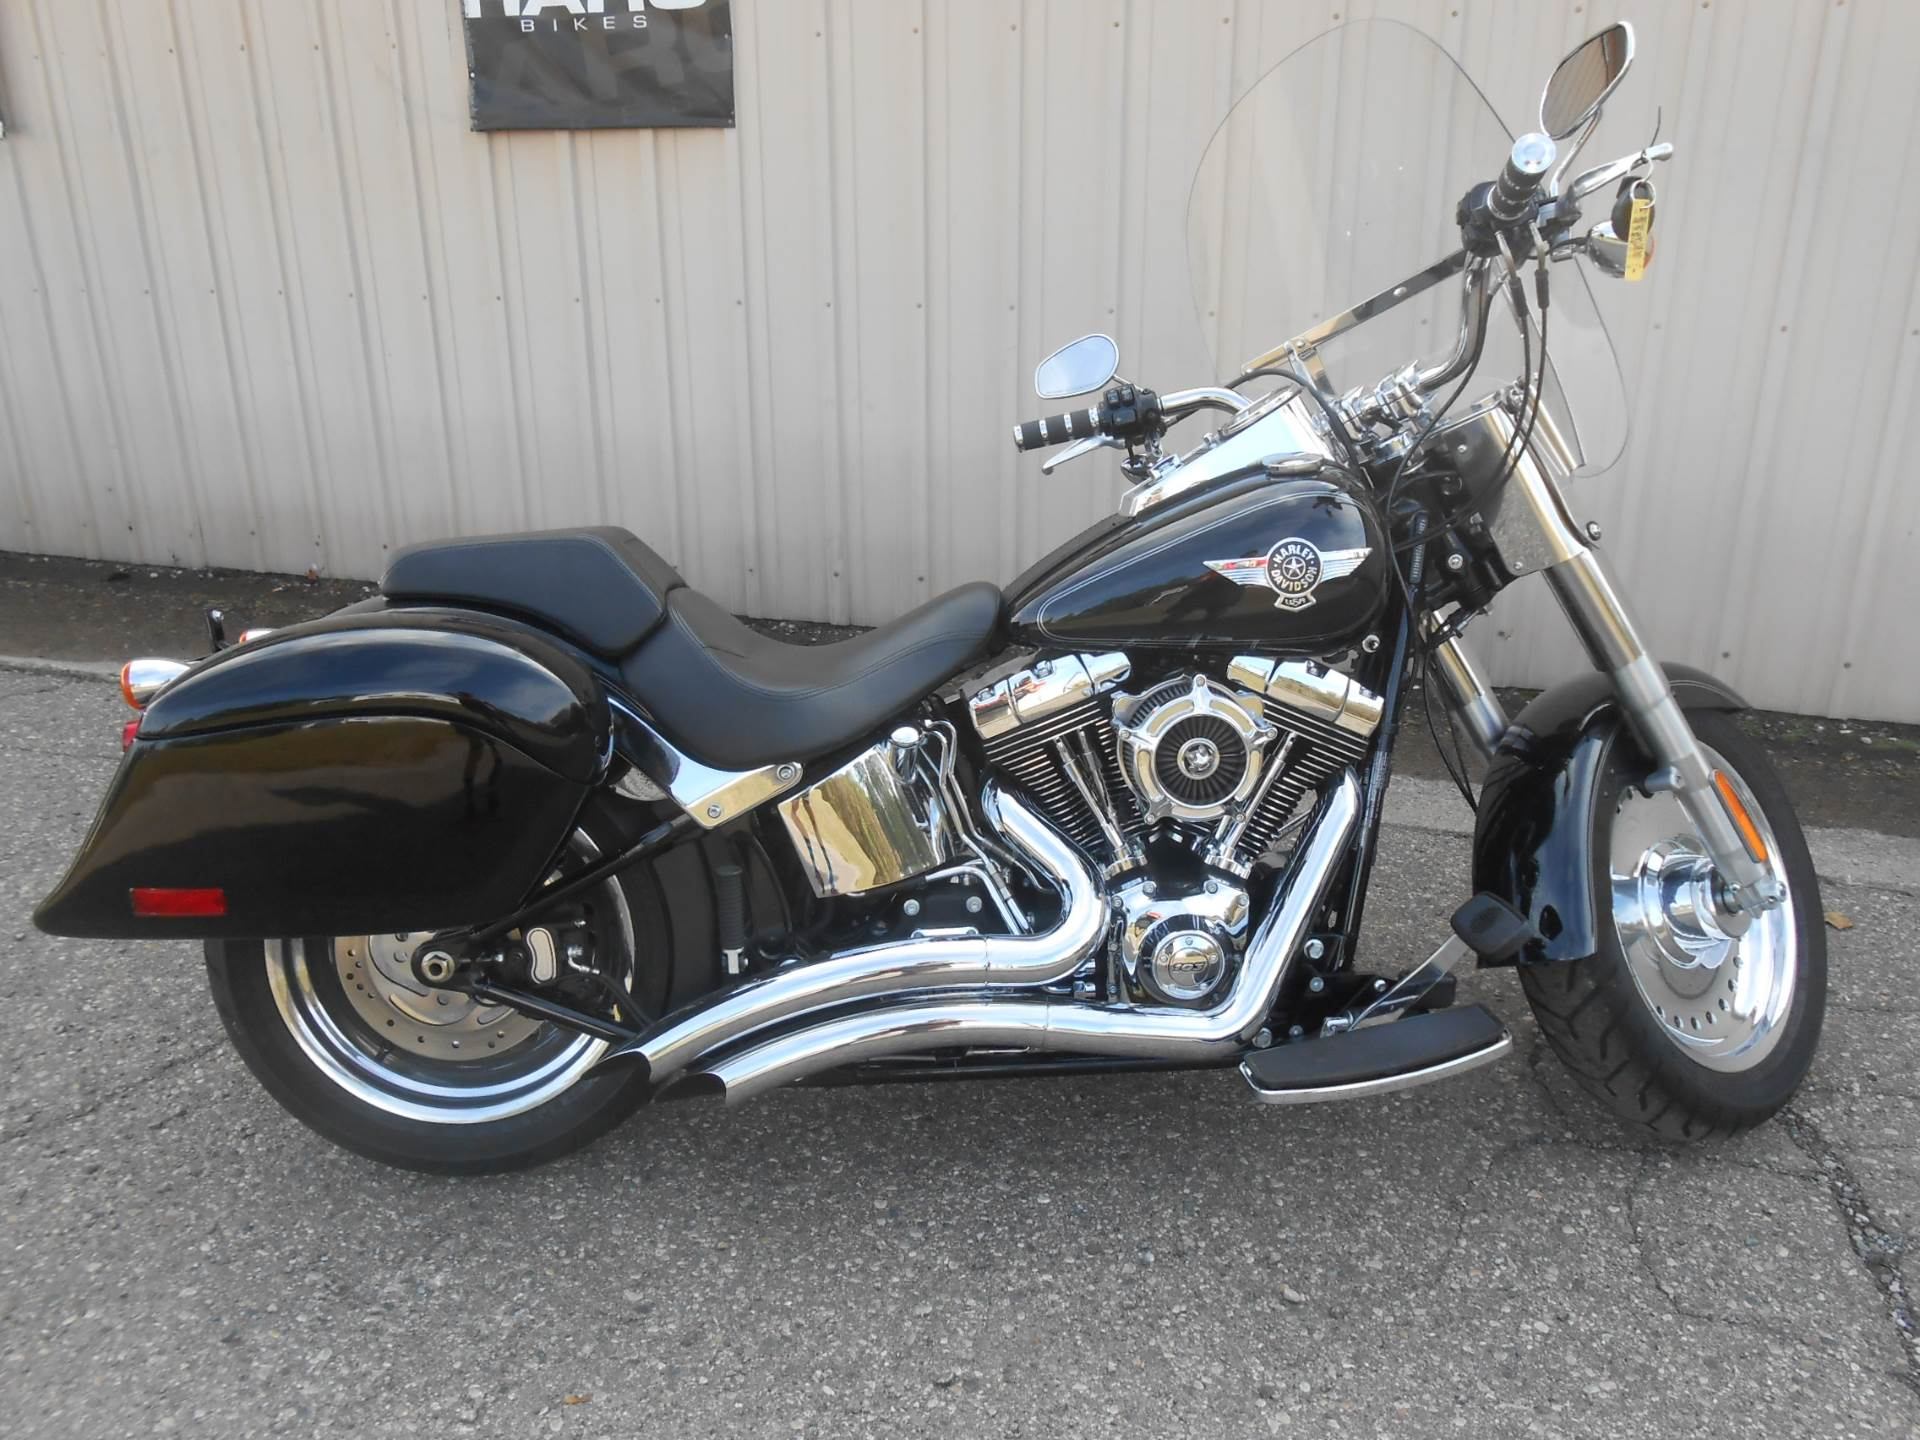 2013 Softail Fat Boy